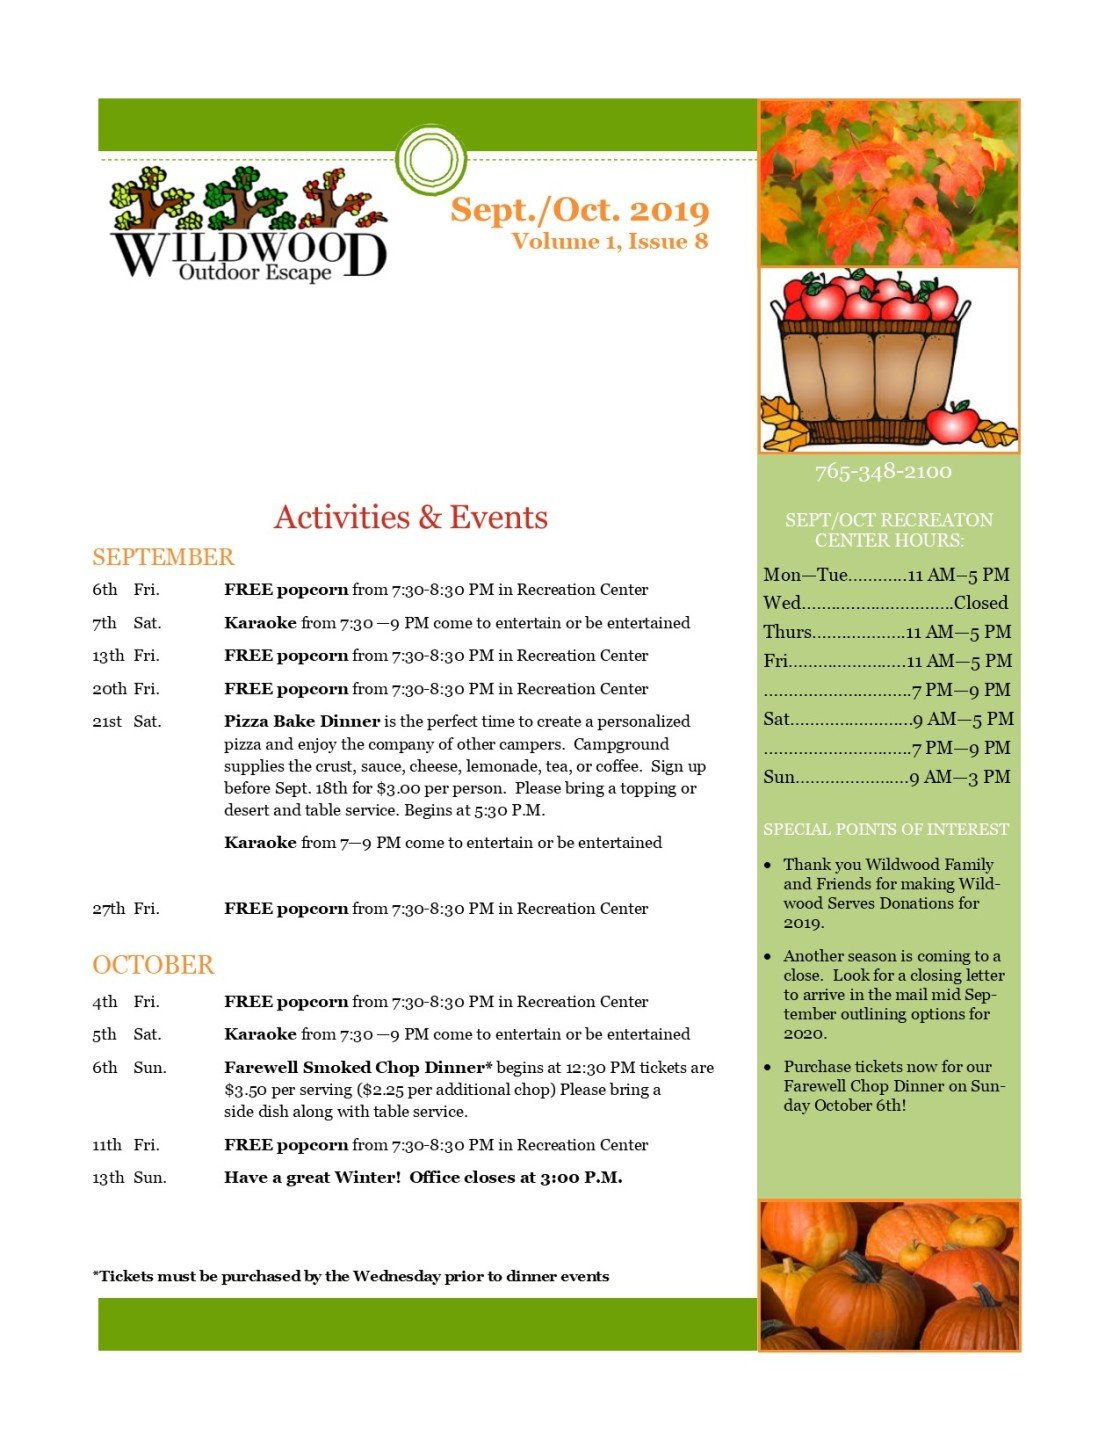 Image of activities and events for September & October